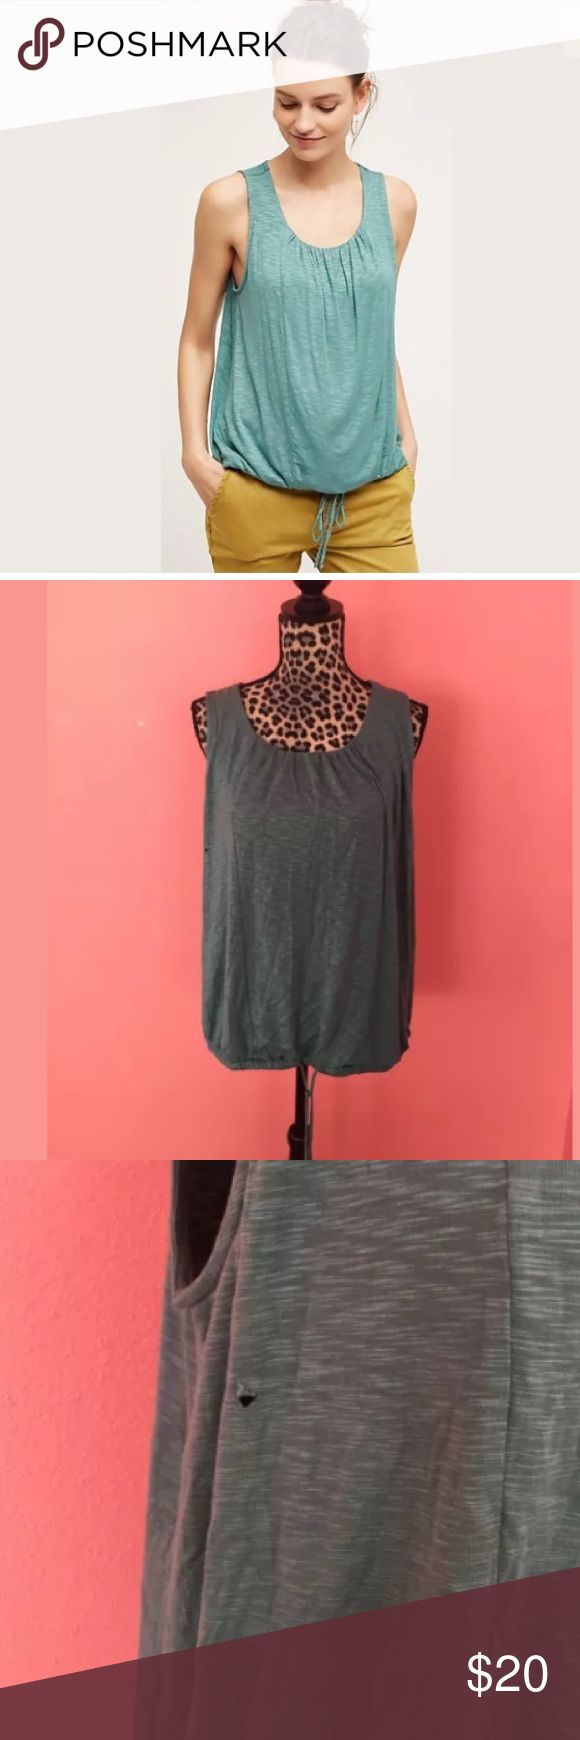 Anthropologie Teal Sleeveless Bubble Hem Top L • Dolan Left Coast Collection's, brand sold at Anthropologie stores, Libba Top in size Large. • Brand new with no tags attached. • Top has a small hole on upper right hand side of top, close to armpit area. • Features a gathered drawstring hem, sleeveless, and made of a soft pajama like fabric. • Plenty of stretch. • No smells or stains! Anthropologie Tops